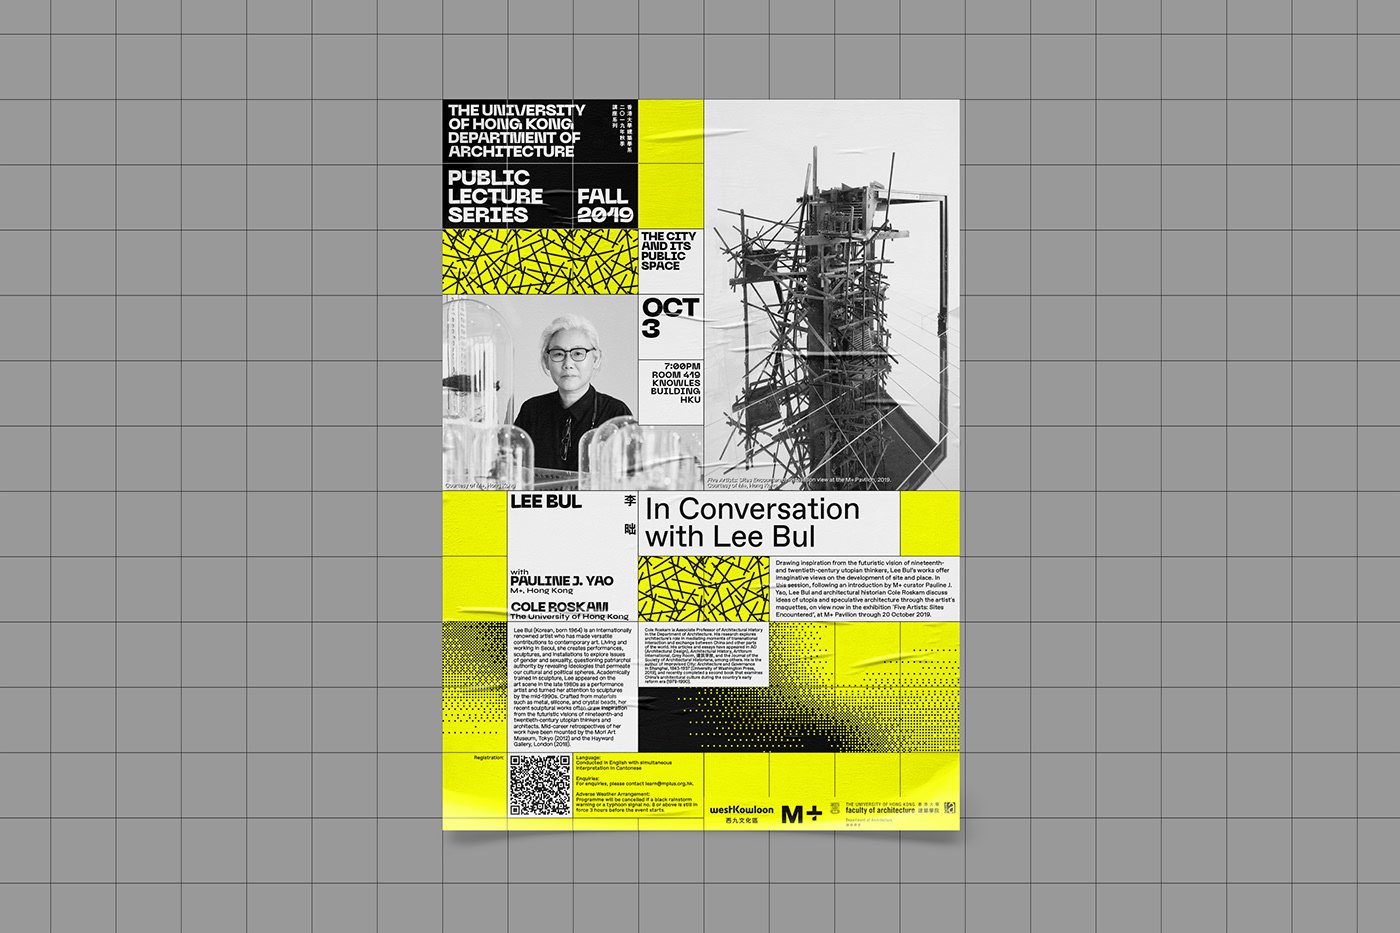 architecture Architecture Poster visual identity event identity graphic design  hku Hong Kong